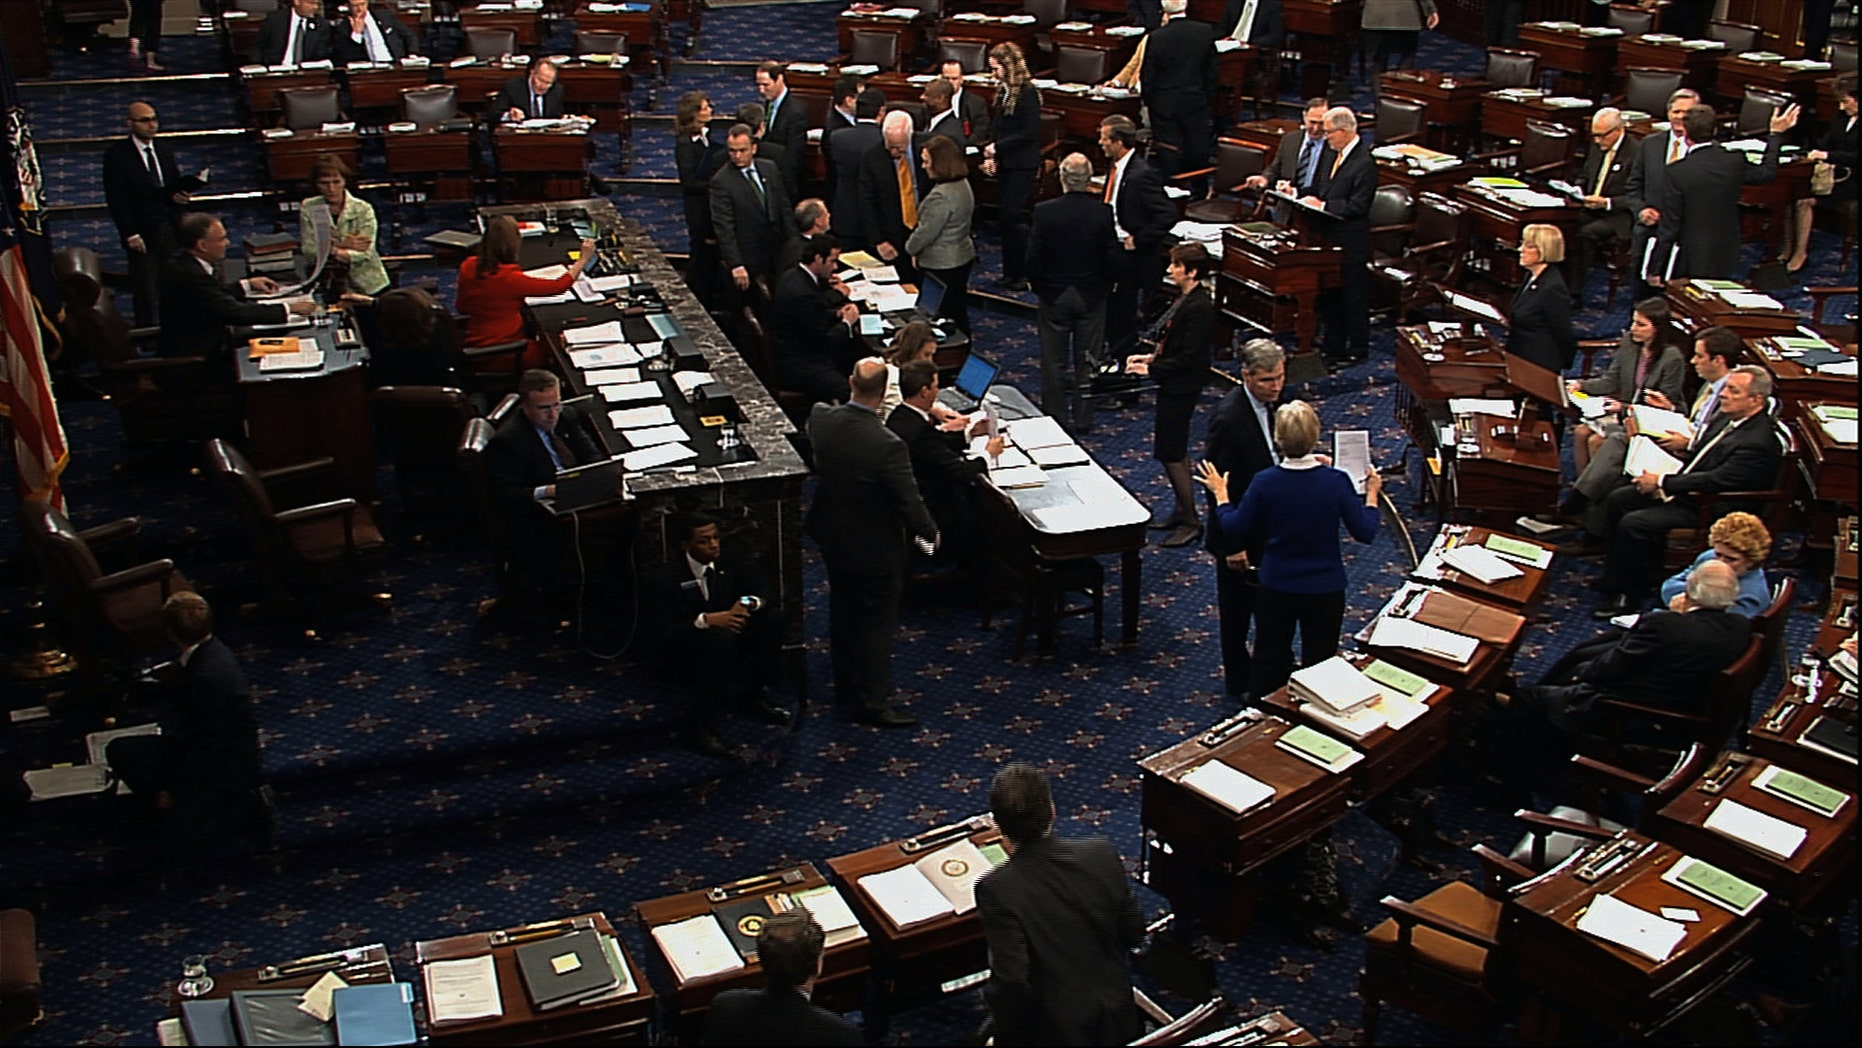 In this video image from Senate Television, senators speak on the floor of the U.S. Senate during voting on an amendment to the budget resolution at the Capitol on Washington, Friday, March 22, 2013. (AP Photo/Senate Television)